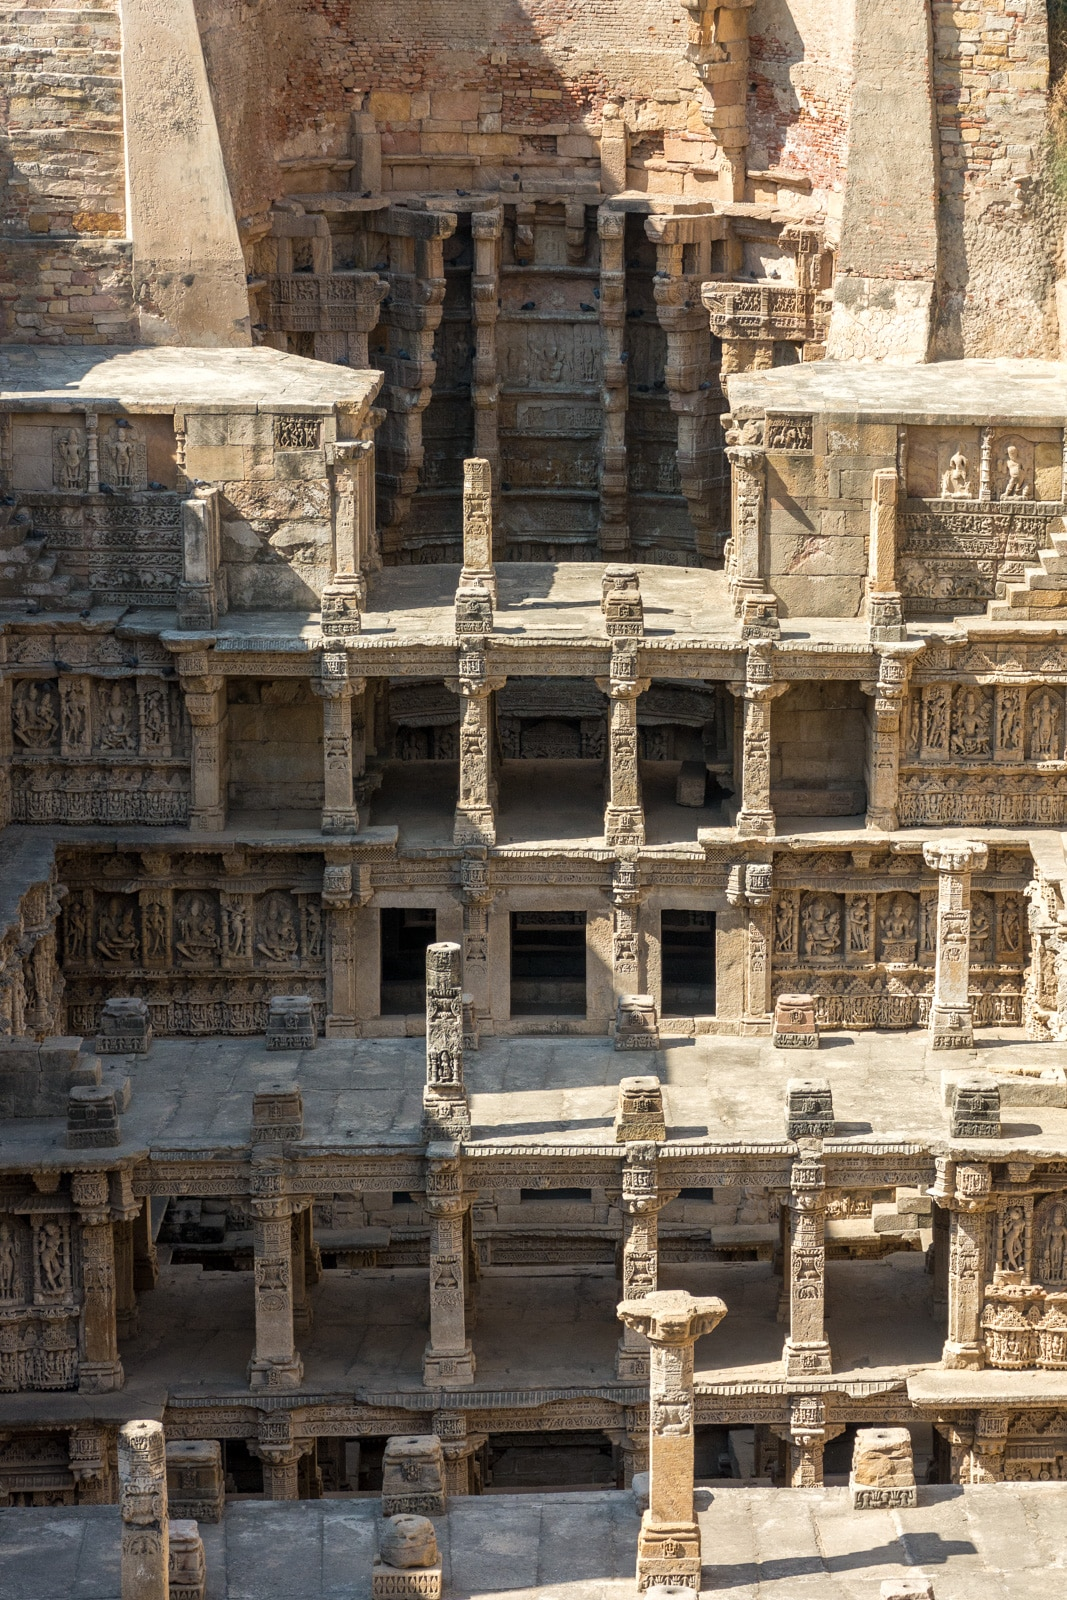 Rani Ki Vav stepwell in Gujarat state, Western India, is a beautiful UNESCO Heritage site and must-see off the beaten track destination in India.